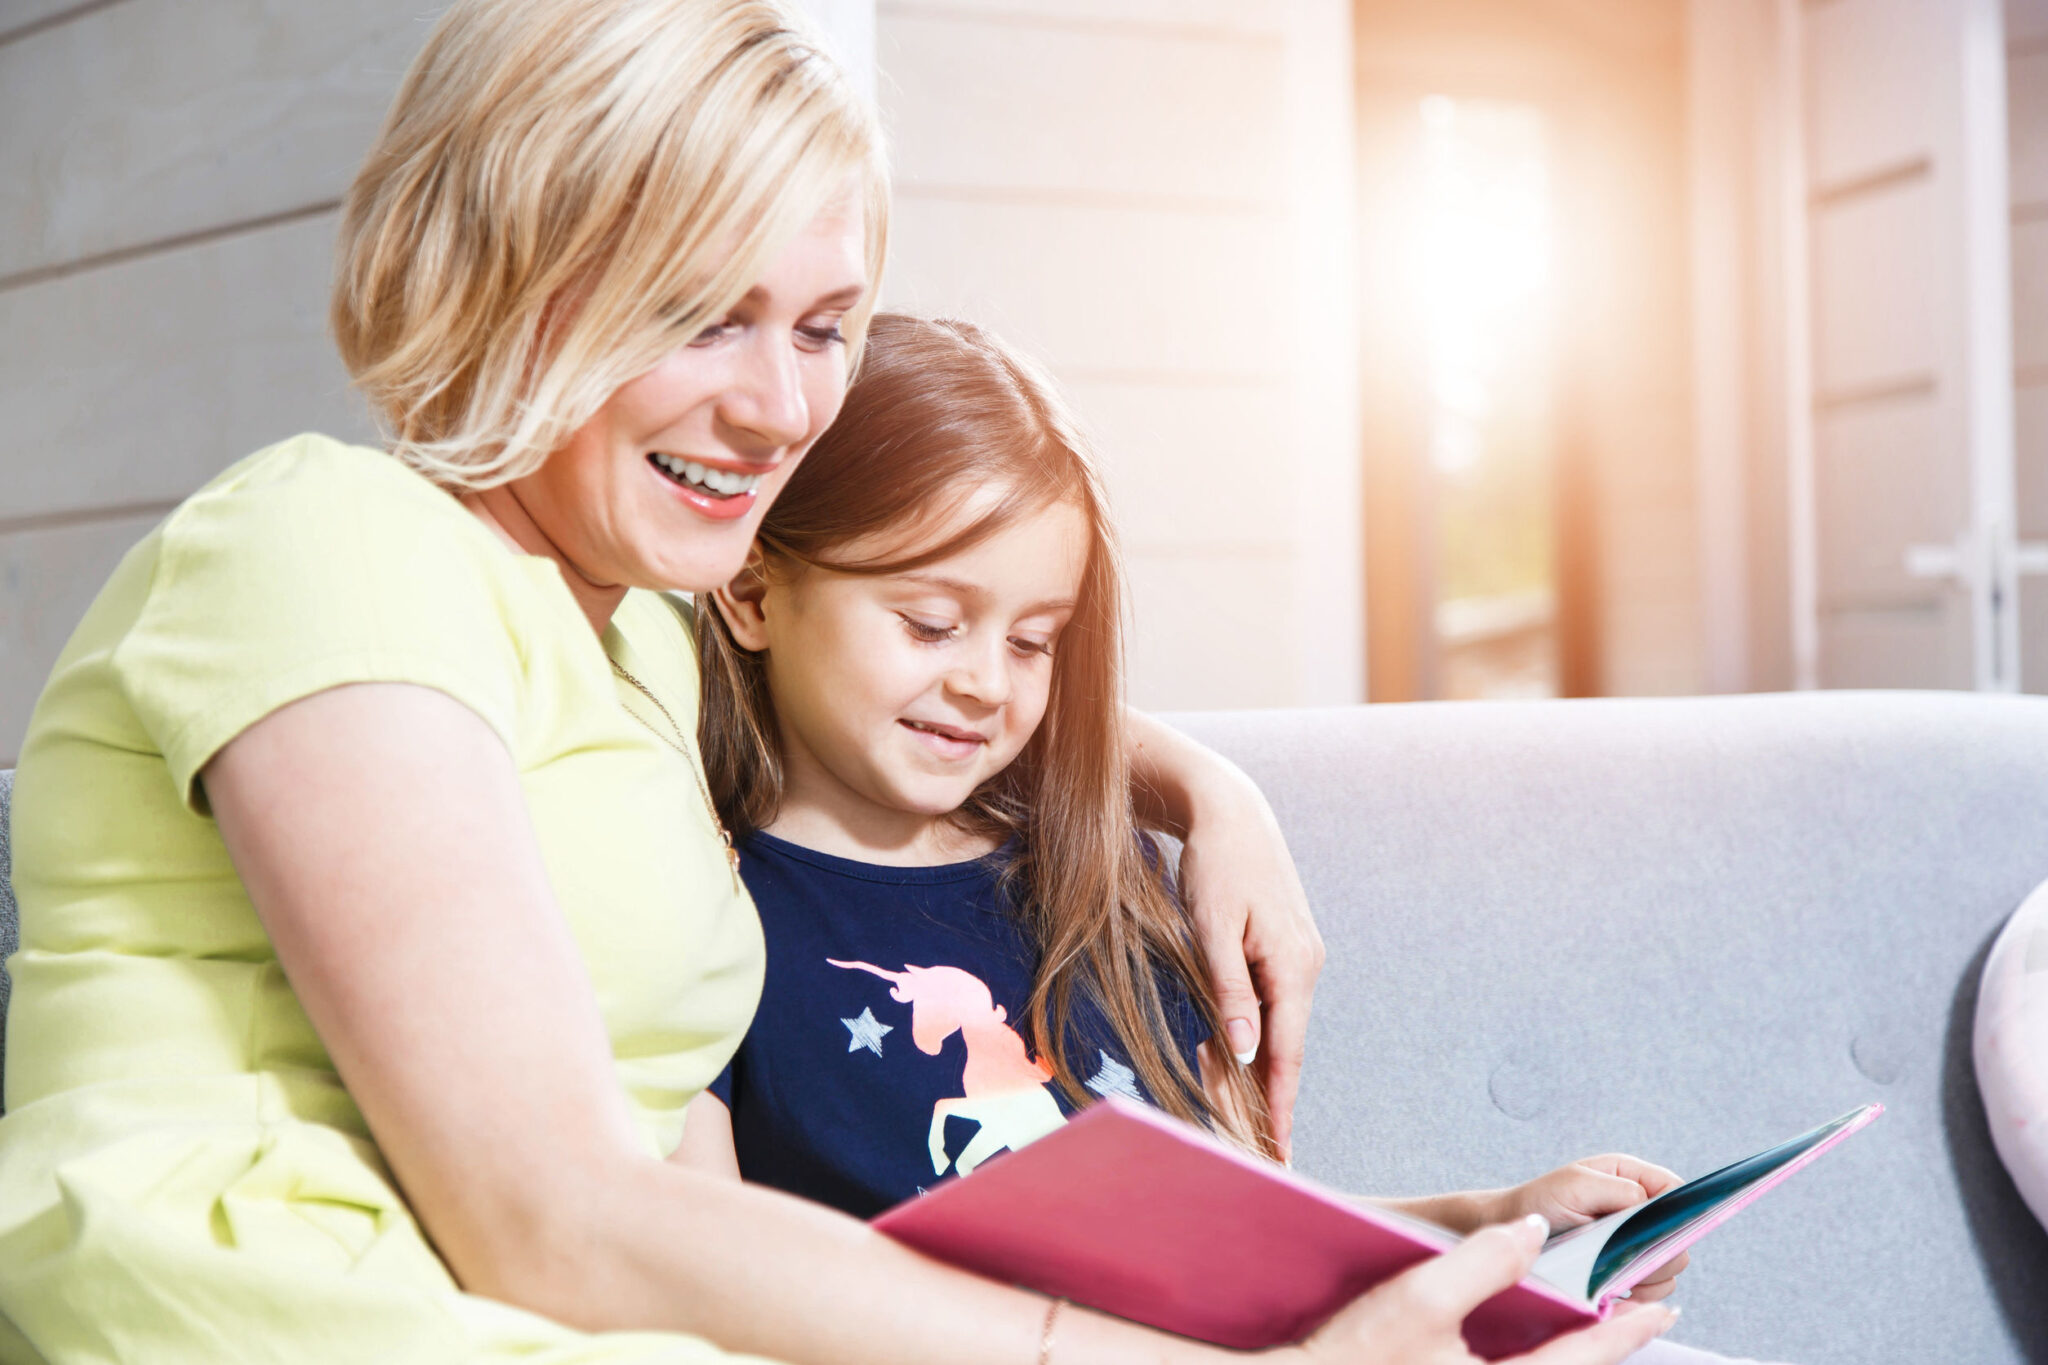 Blonde nanny shares book with young girl